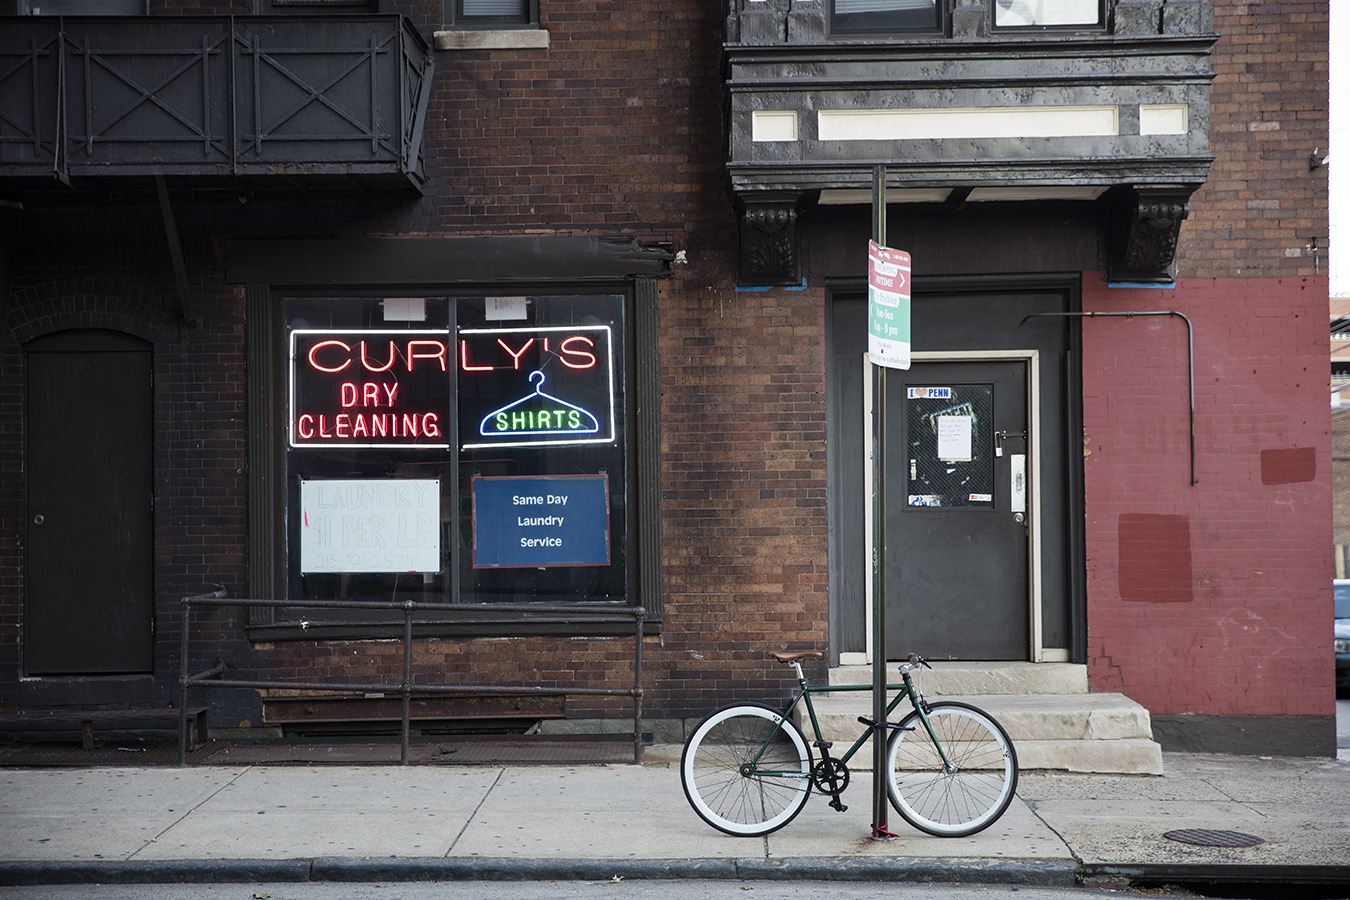 9_Curlys_Casey Egner_Street Photography_Ornament_Laundry_Bike_Neon_Brick_facade copy